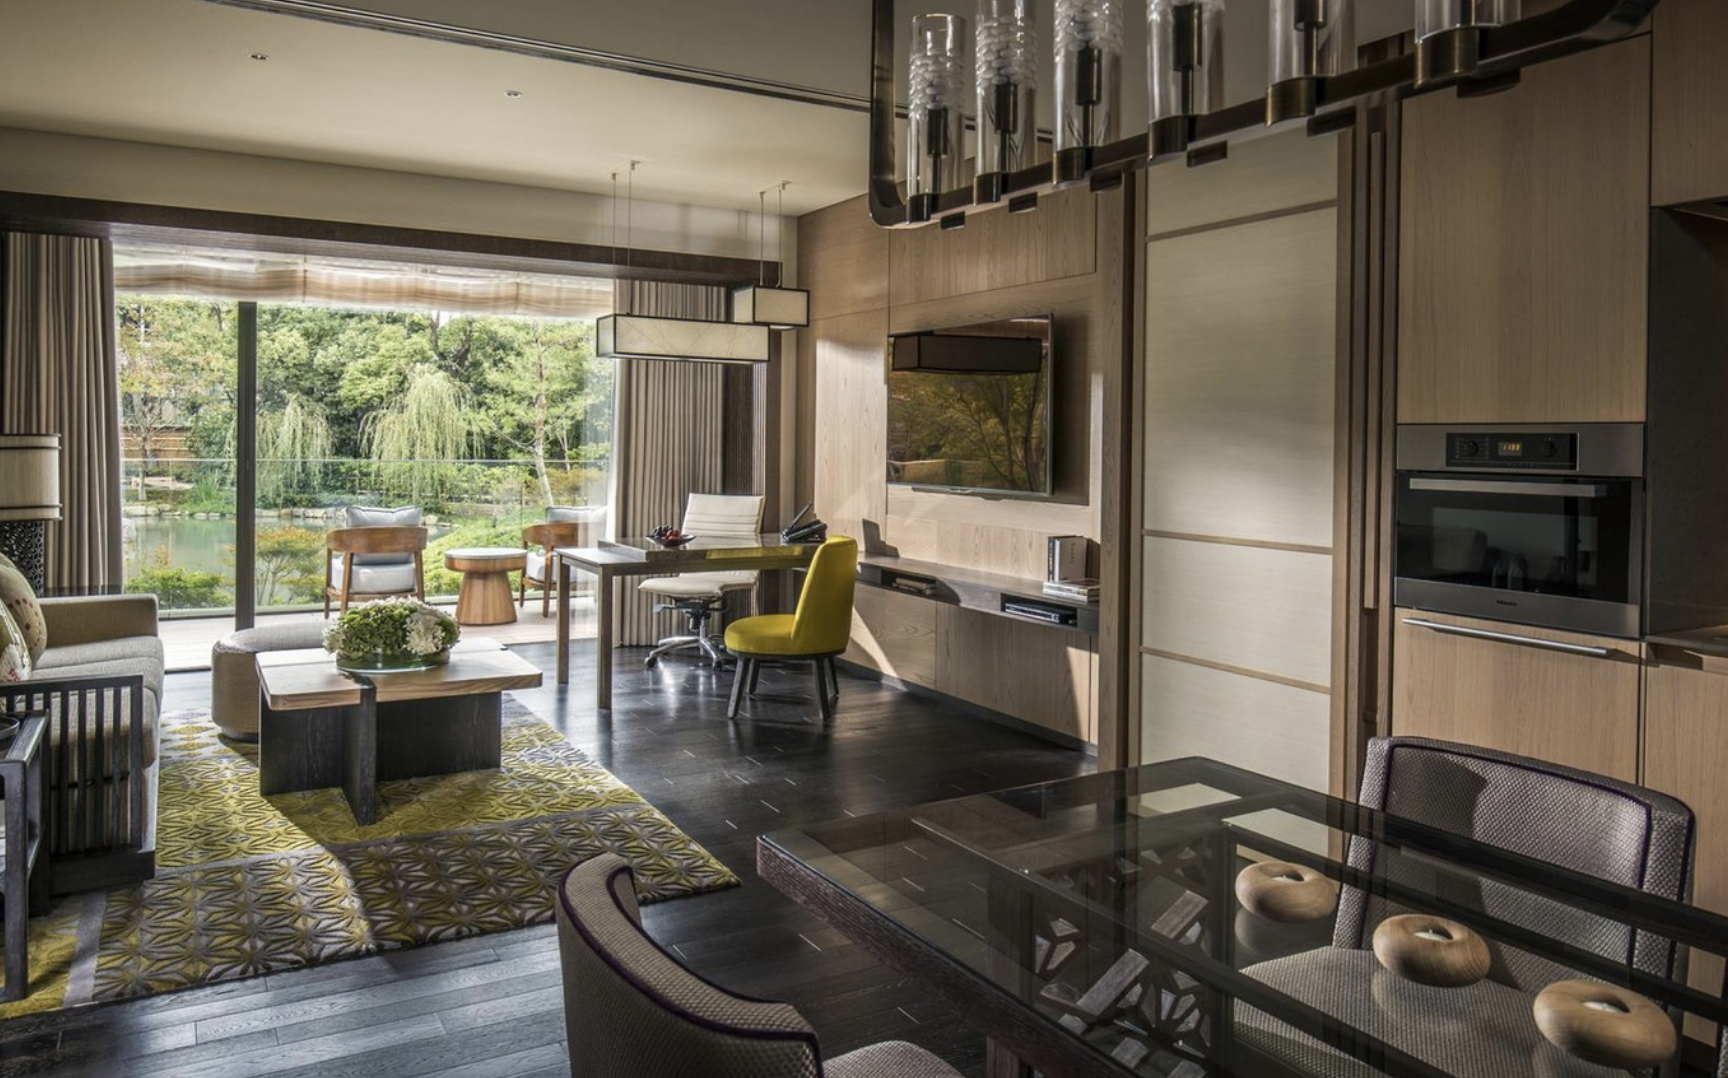 About Four Seasons Hotel Residences Kyoto